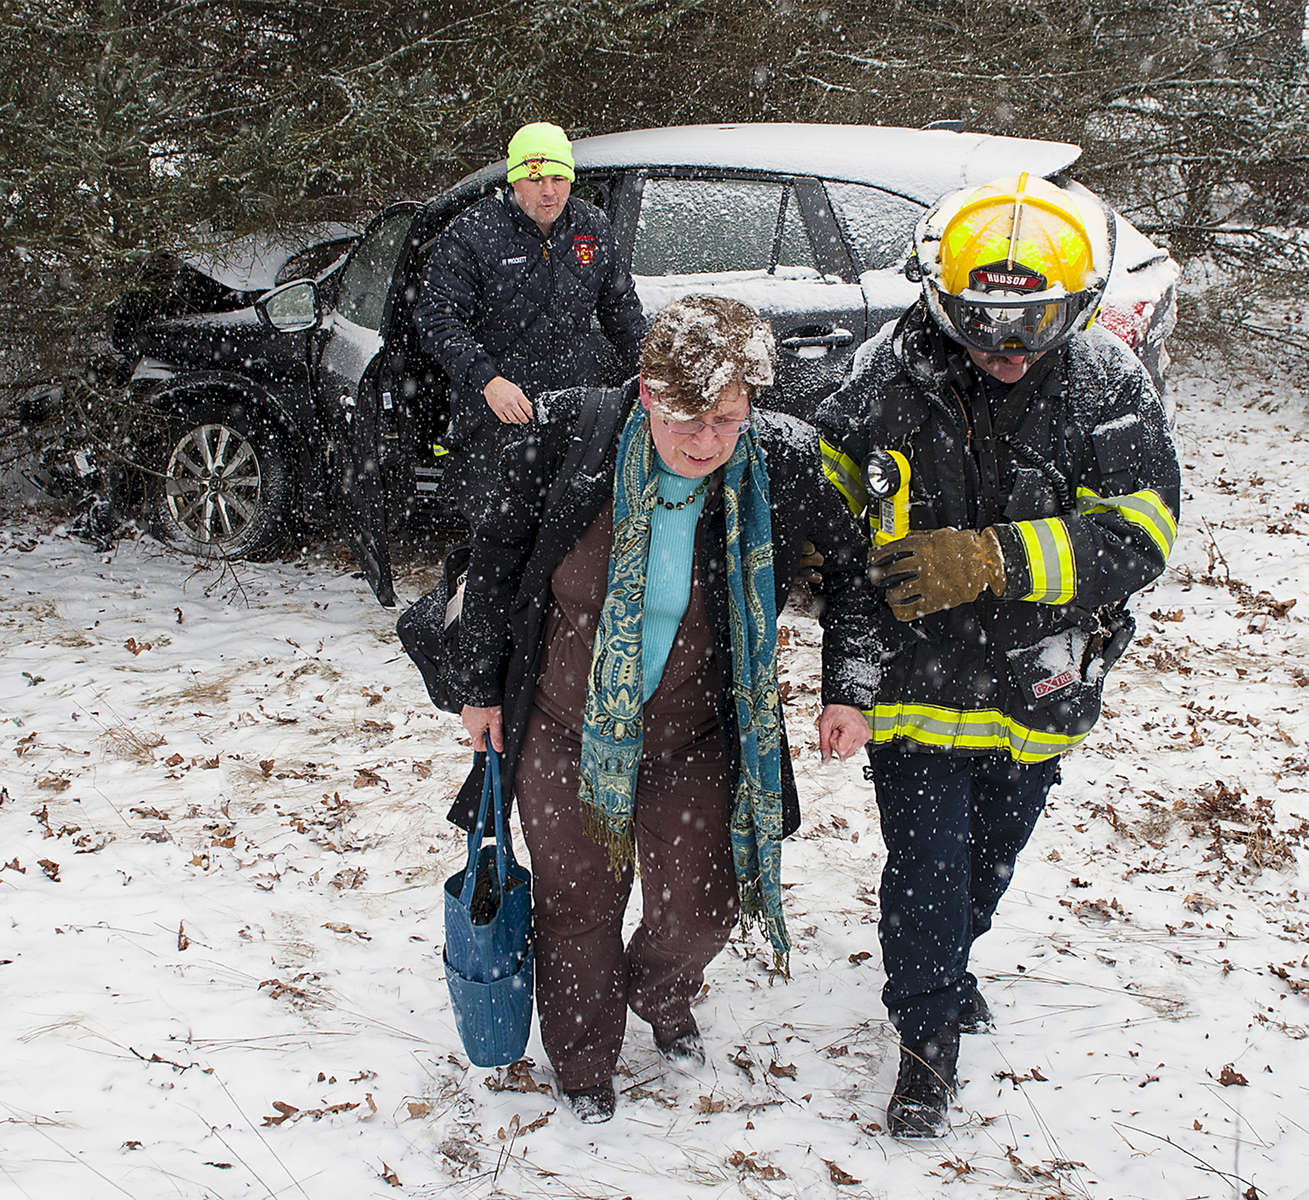 2/12/19-- HUDSON--   Hudson Fire Lt. Erick Currin, right, and Police Officer Peter Lambert assist a passenger from a car involved in crash on Main Street at Lewis Street Tuesday afternoon.  There were no injuries.  Both vehicles were towed from the scene. [Daily News and Wicked Local Staff Photo/Art Illman]